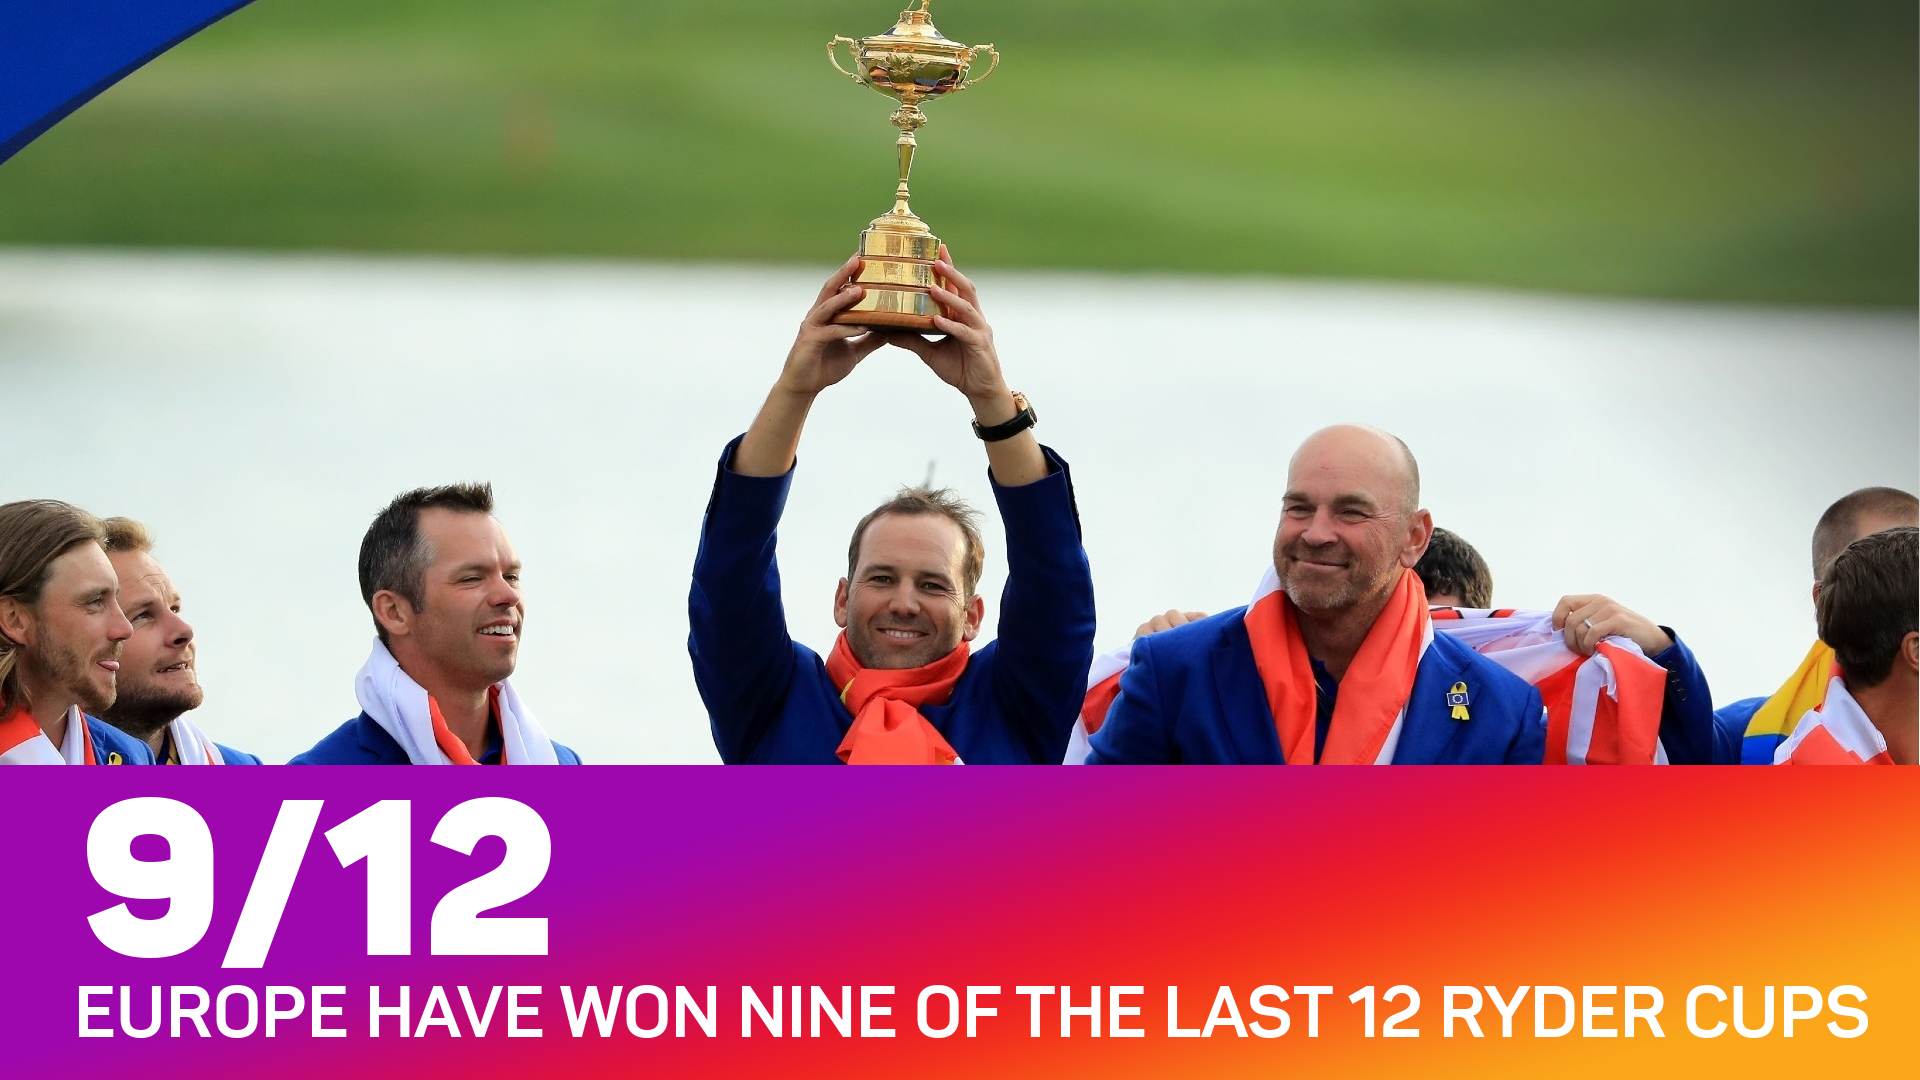 Europe have dominated the Ryder Cup in recent times